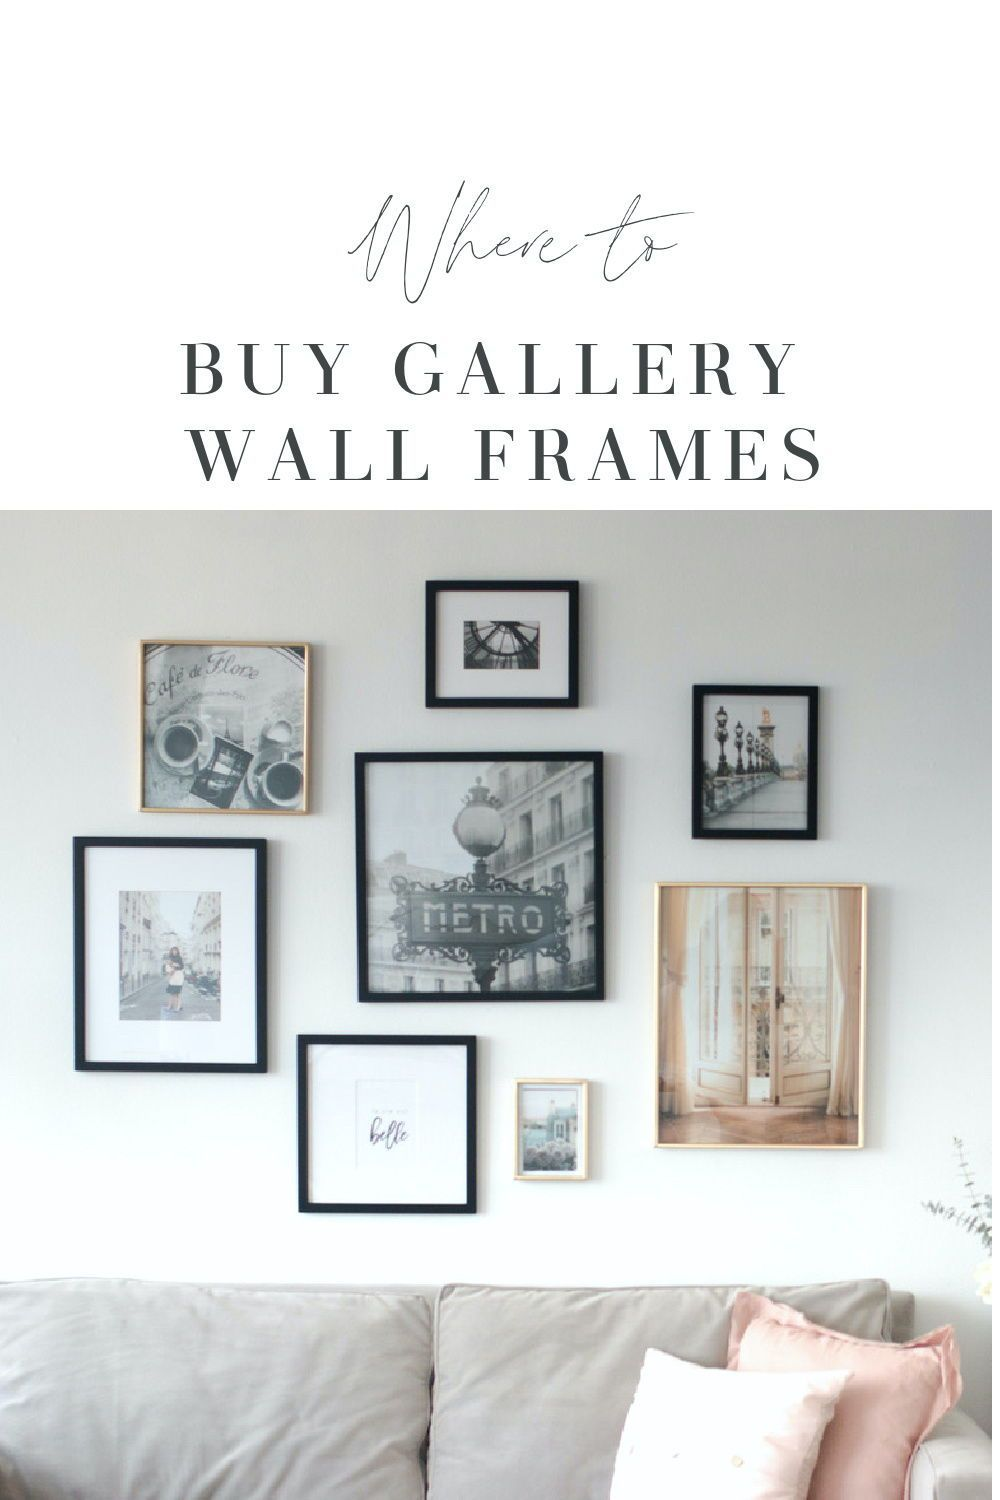 Where to Buy Gallery Frames Online #paris #parisphotography #gallerywall #homedecor #francophile #frenchhomedecor